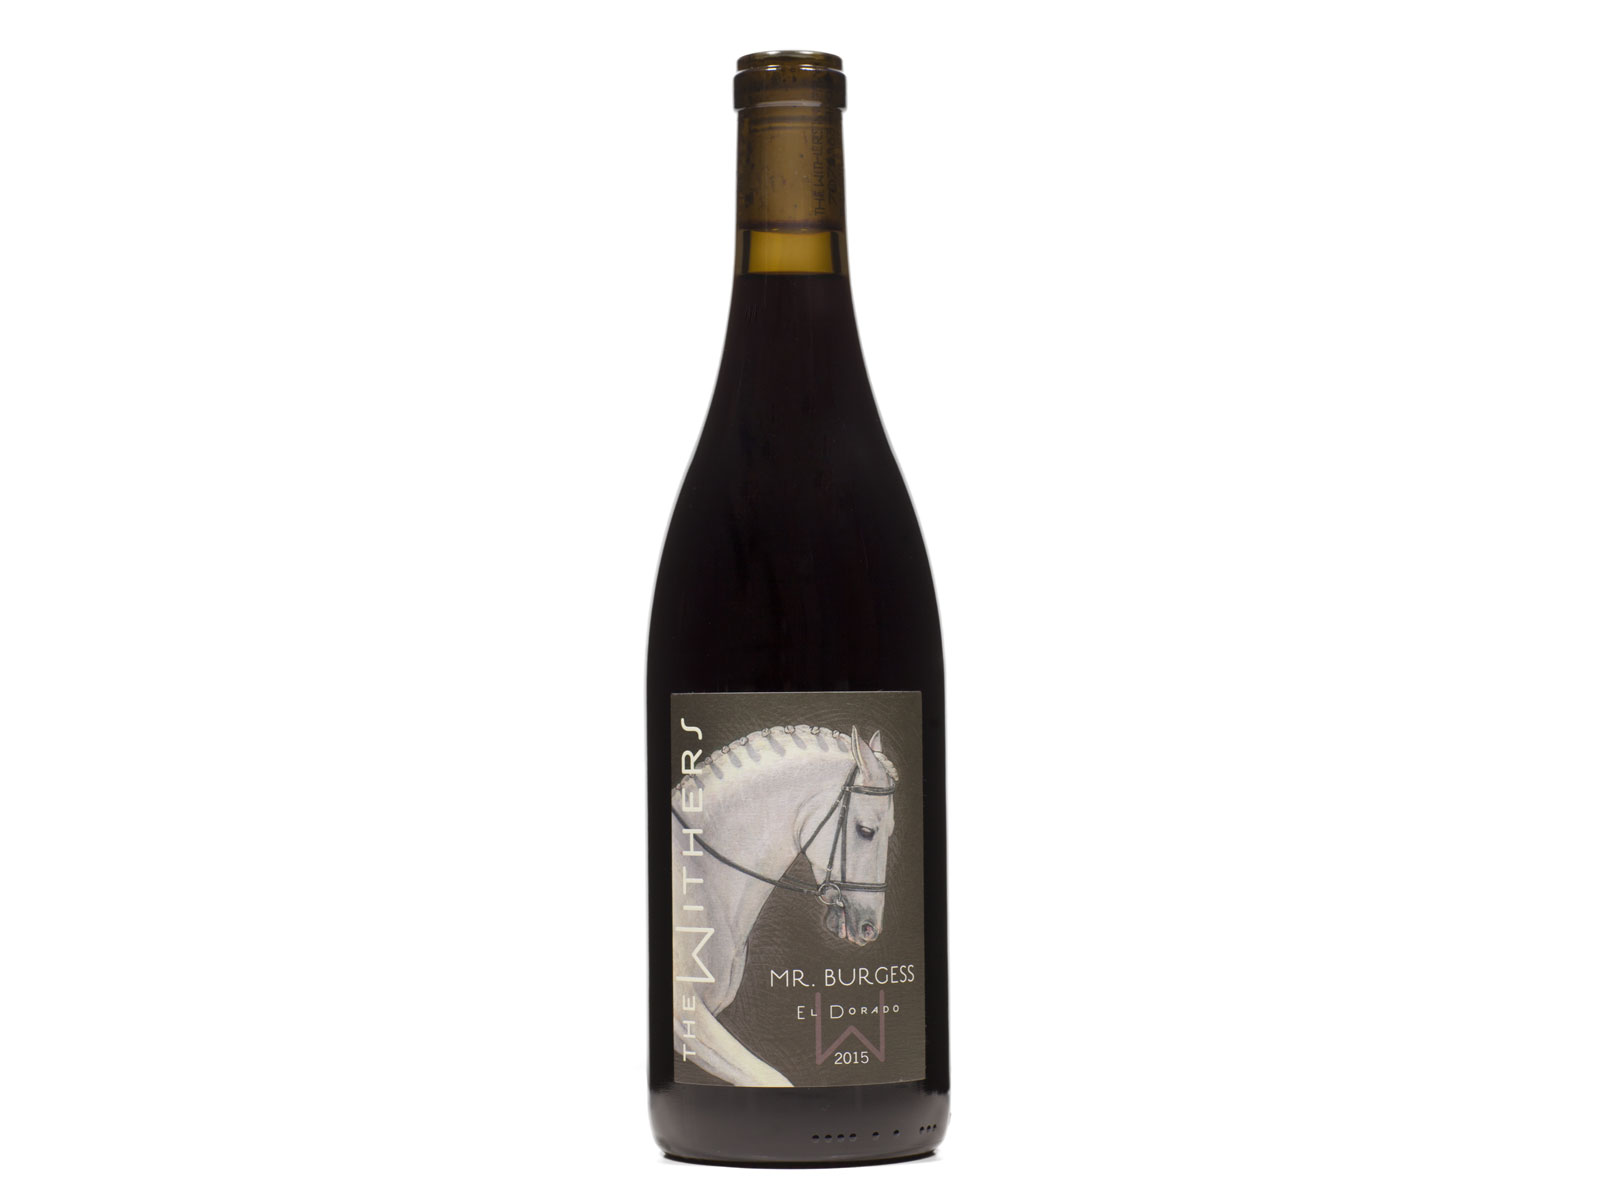 2015 The Withers Mr. Burgess Syrah Blend